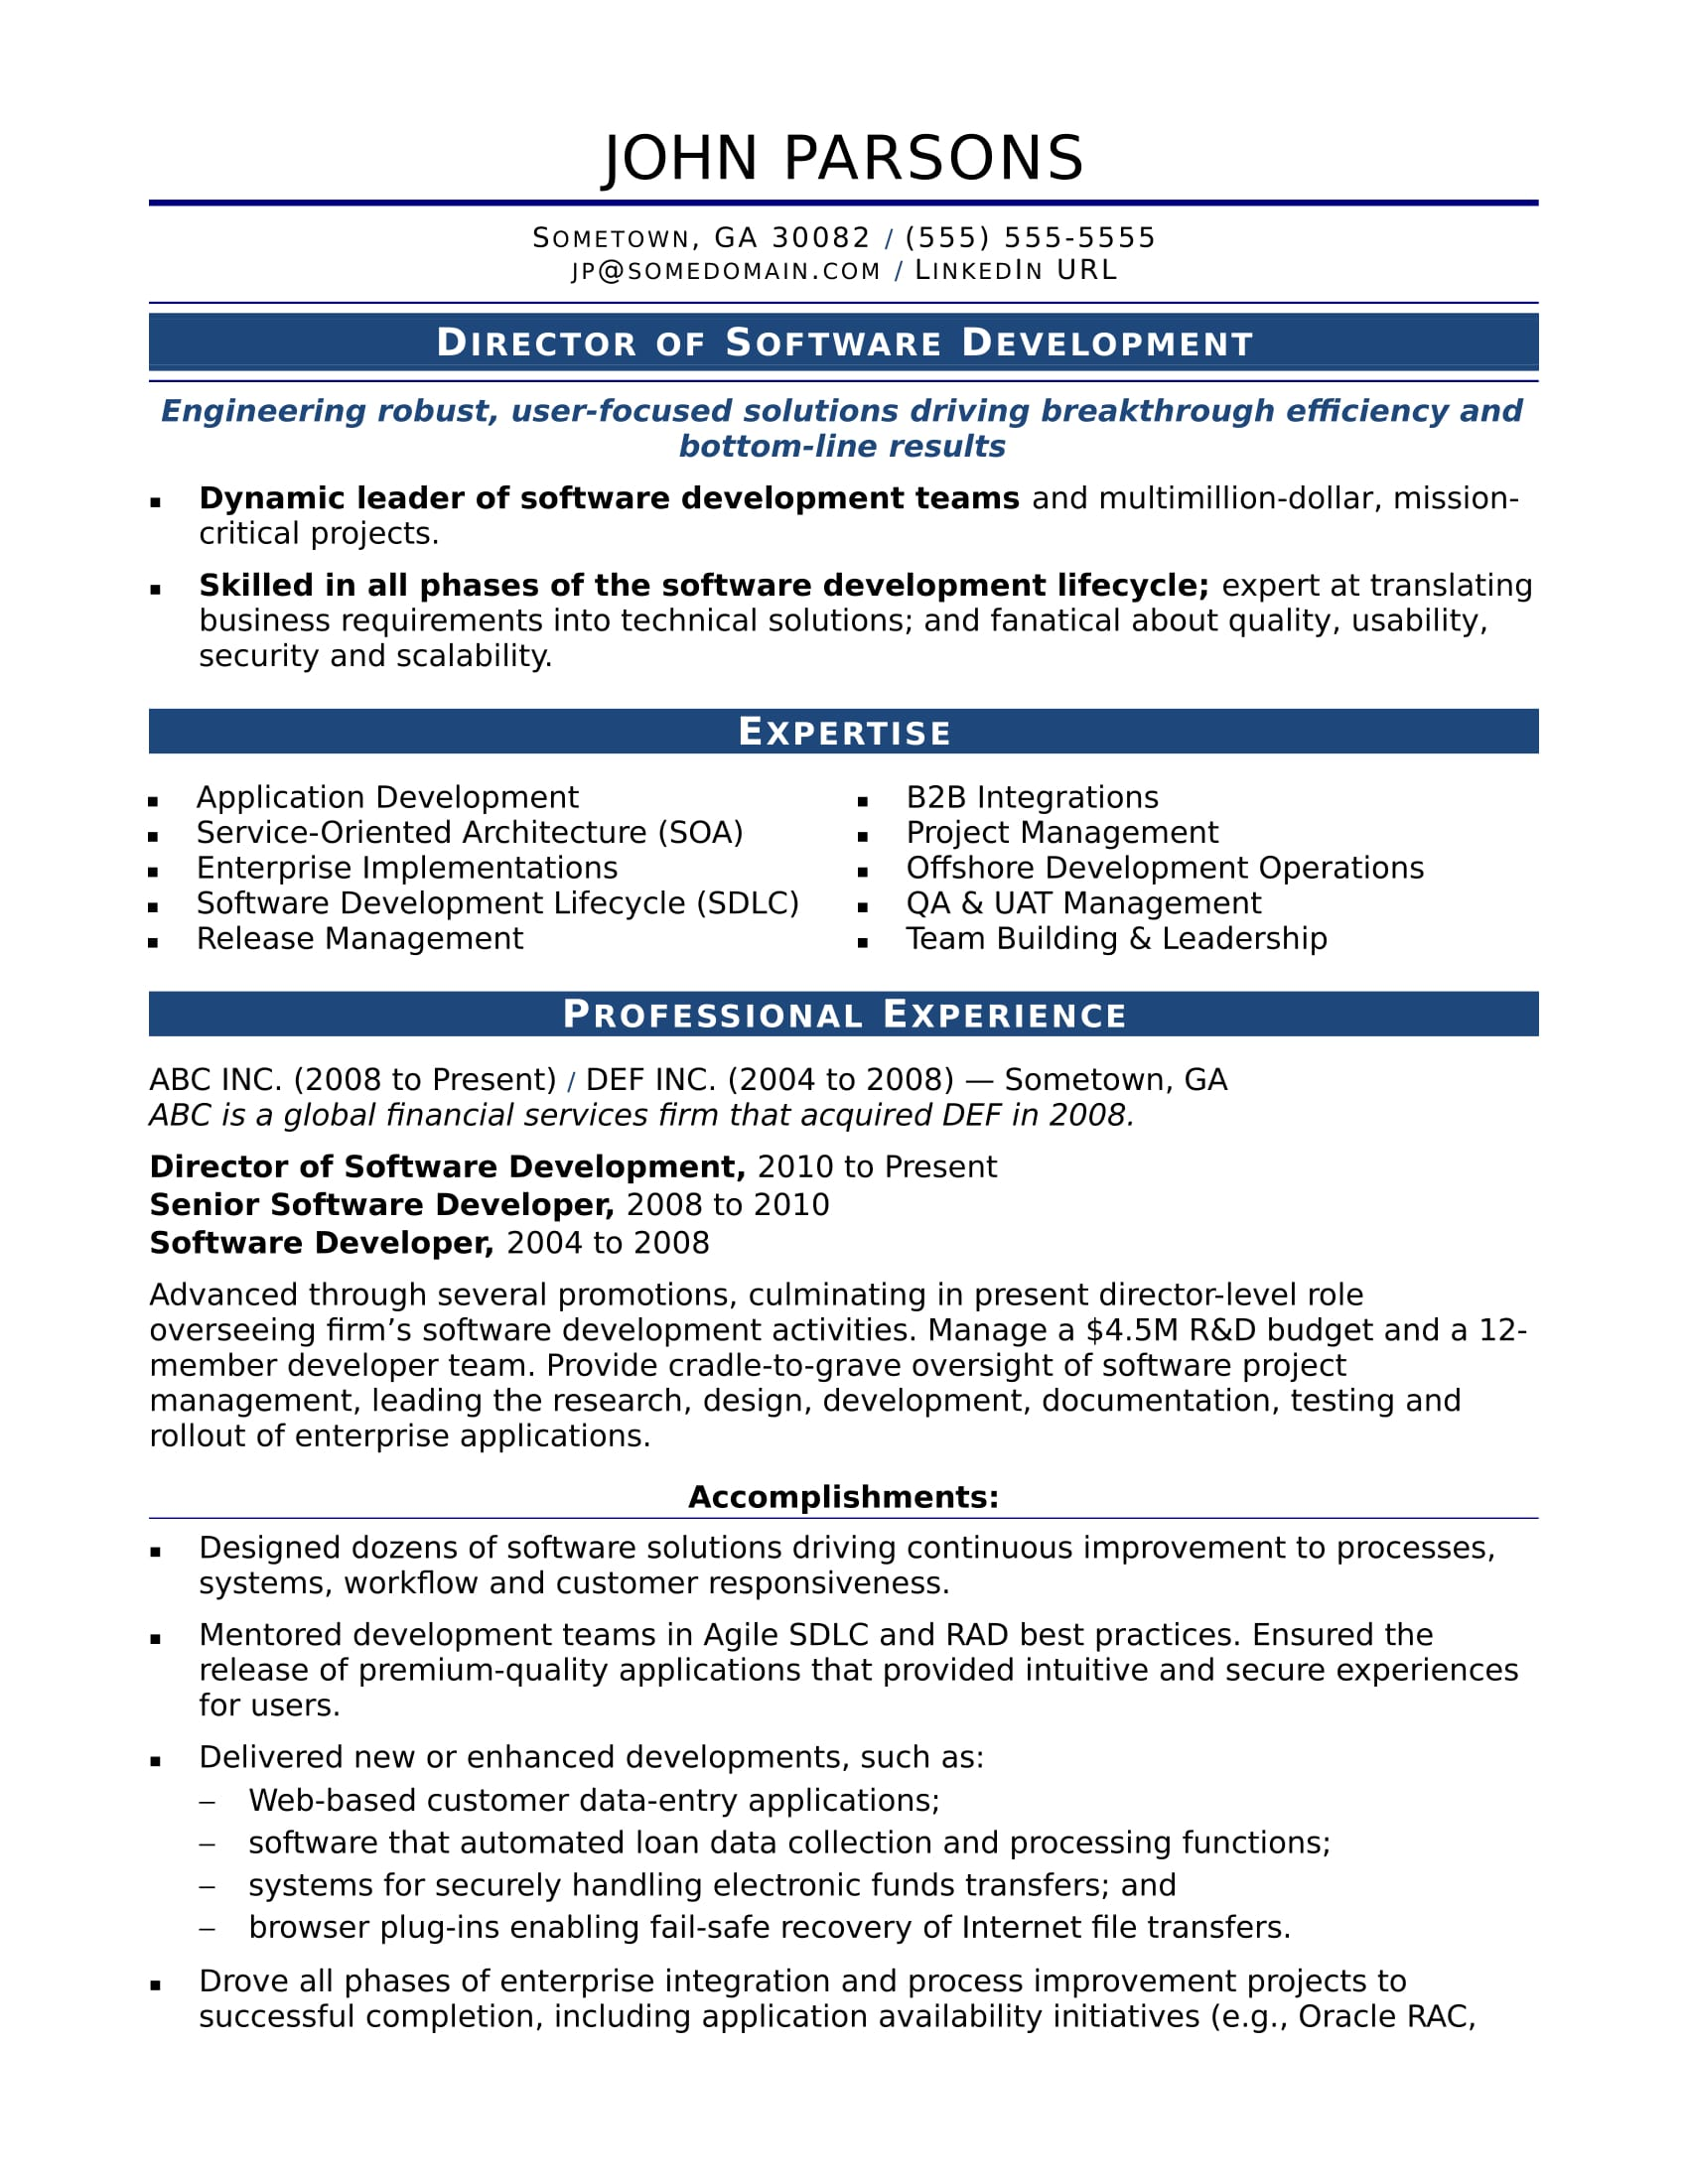 Sample Resume For An Experienced IT Developer Within Senior Software Developer Resume